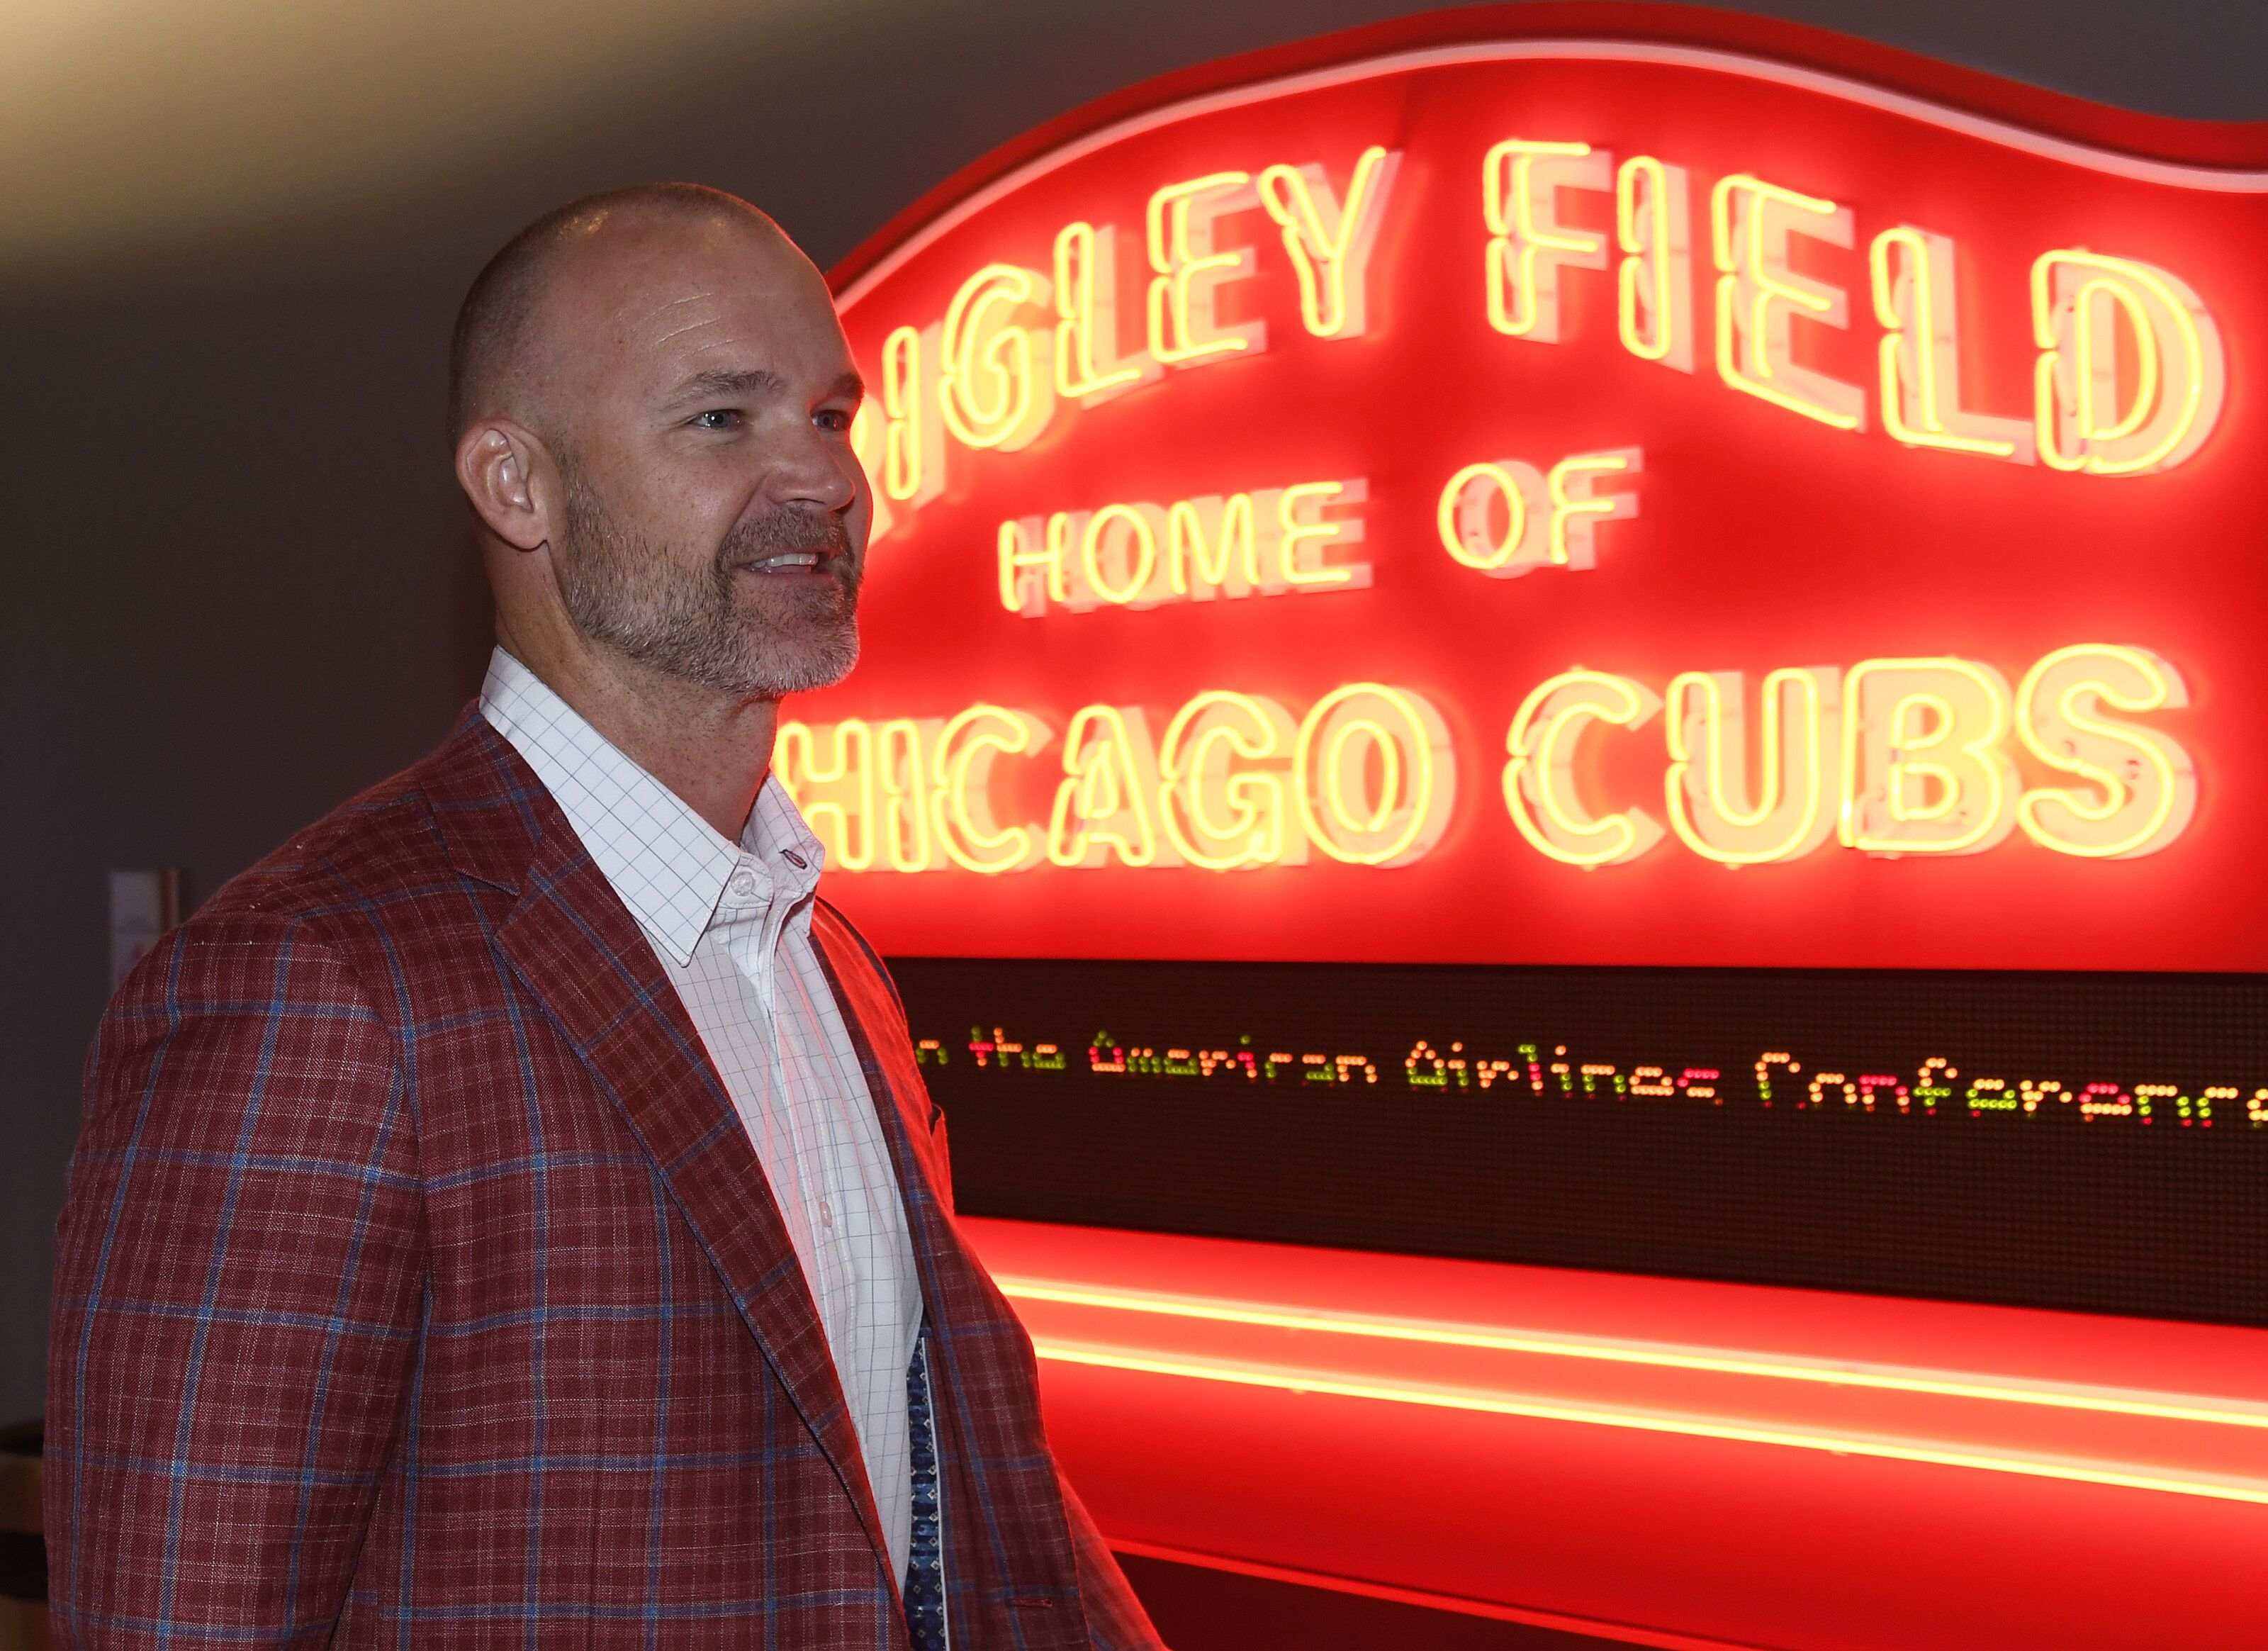 Chicago Cubs: David Ross looks like he could take over a selling team